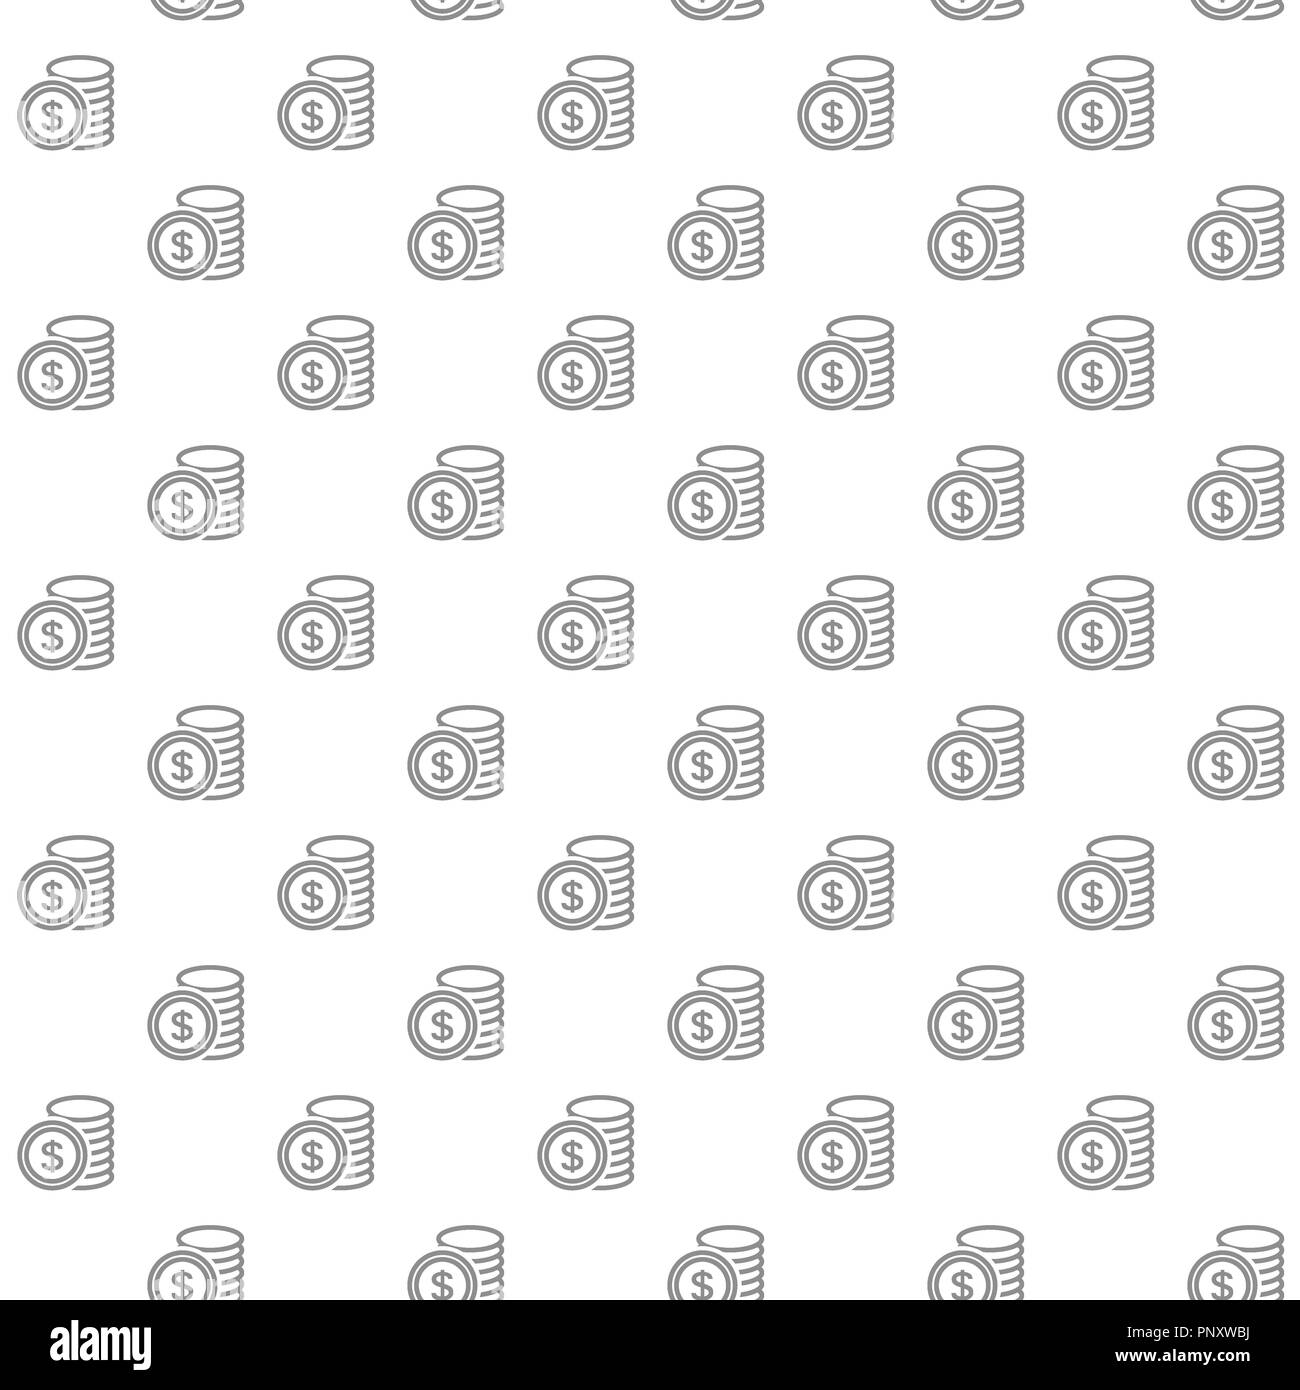 Currency Symbols Seamless Pattern Finance Stock Photos Currency